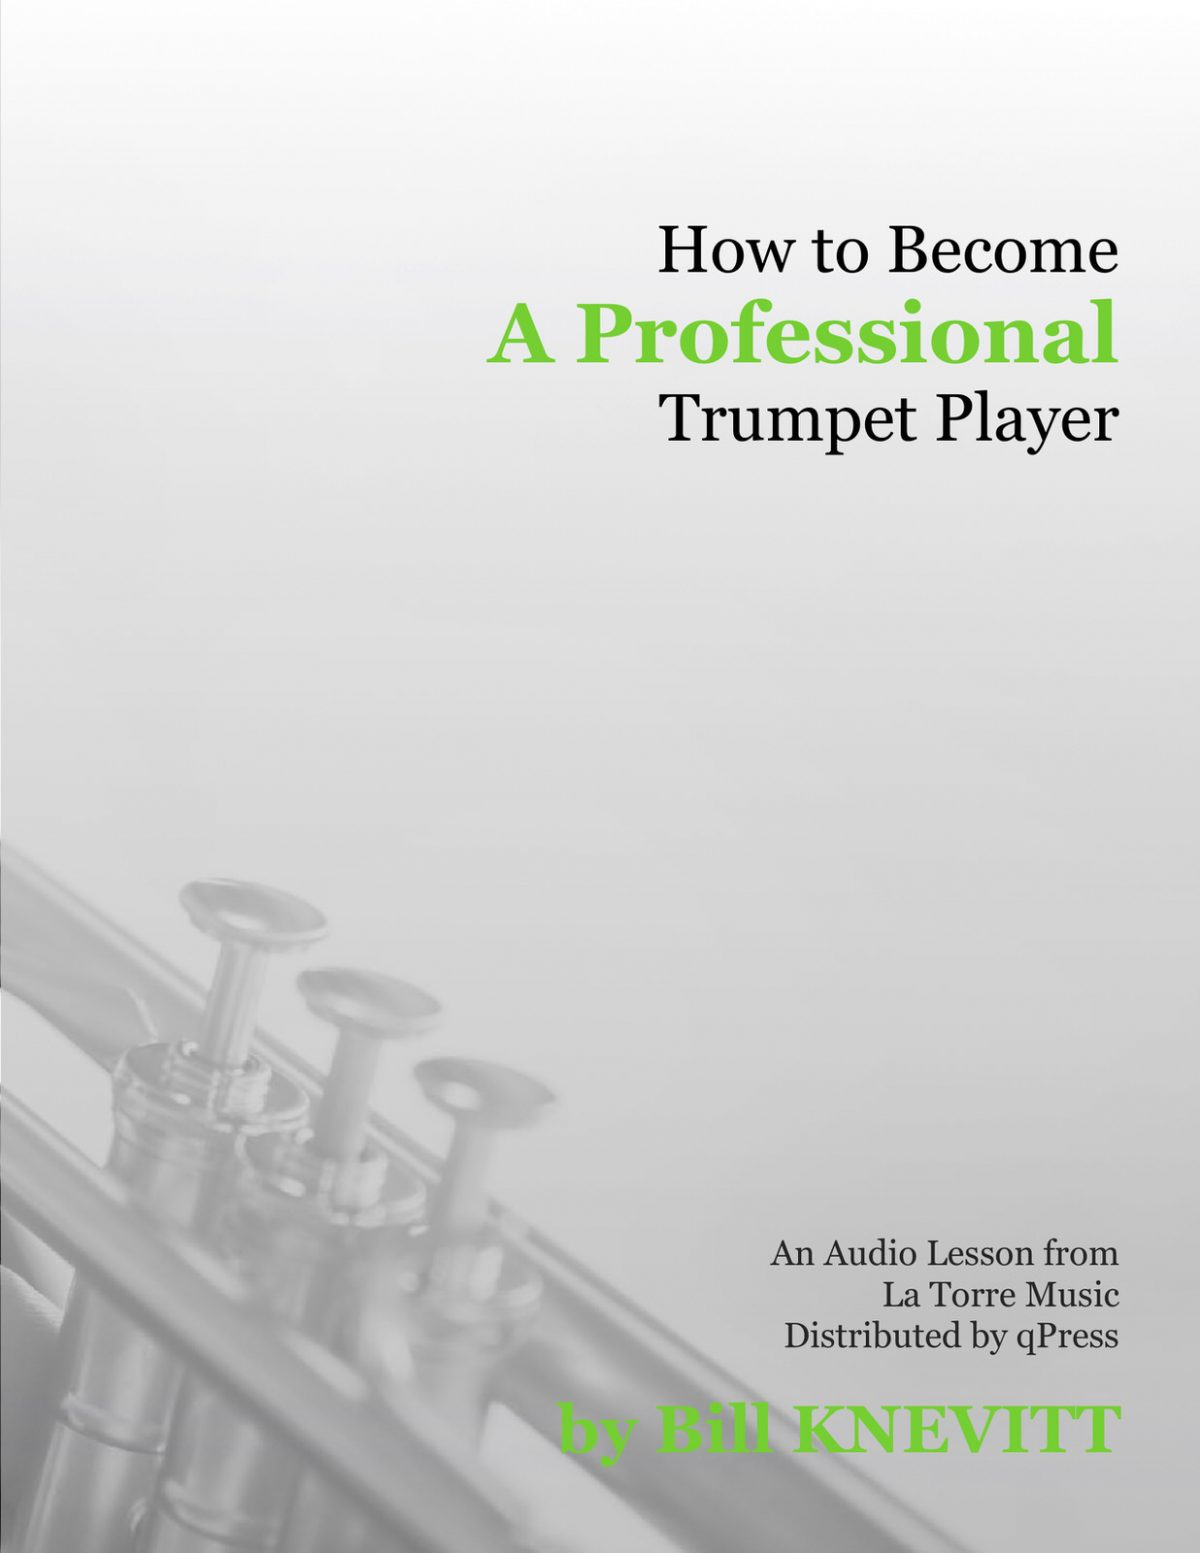 Knevitt, How to Become a Professional Trumpet Player